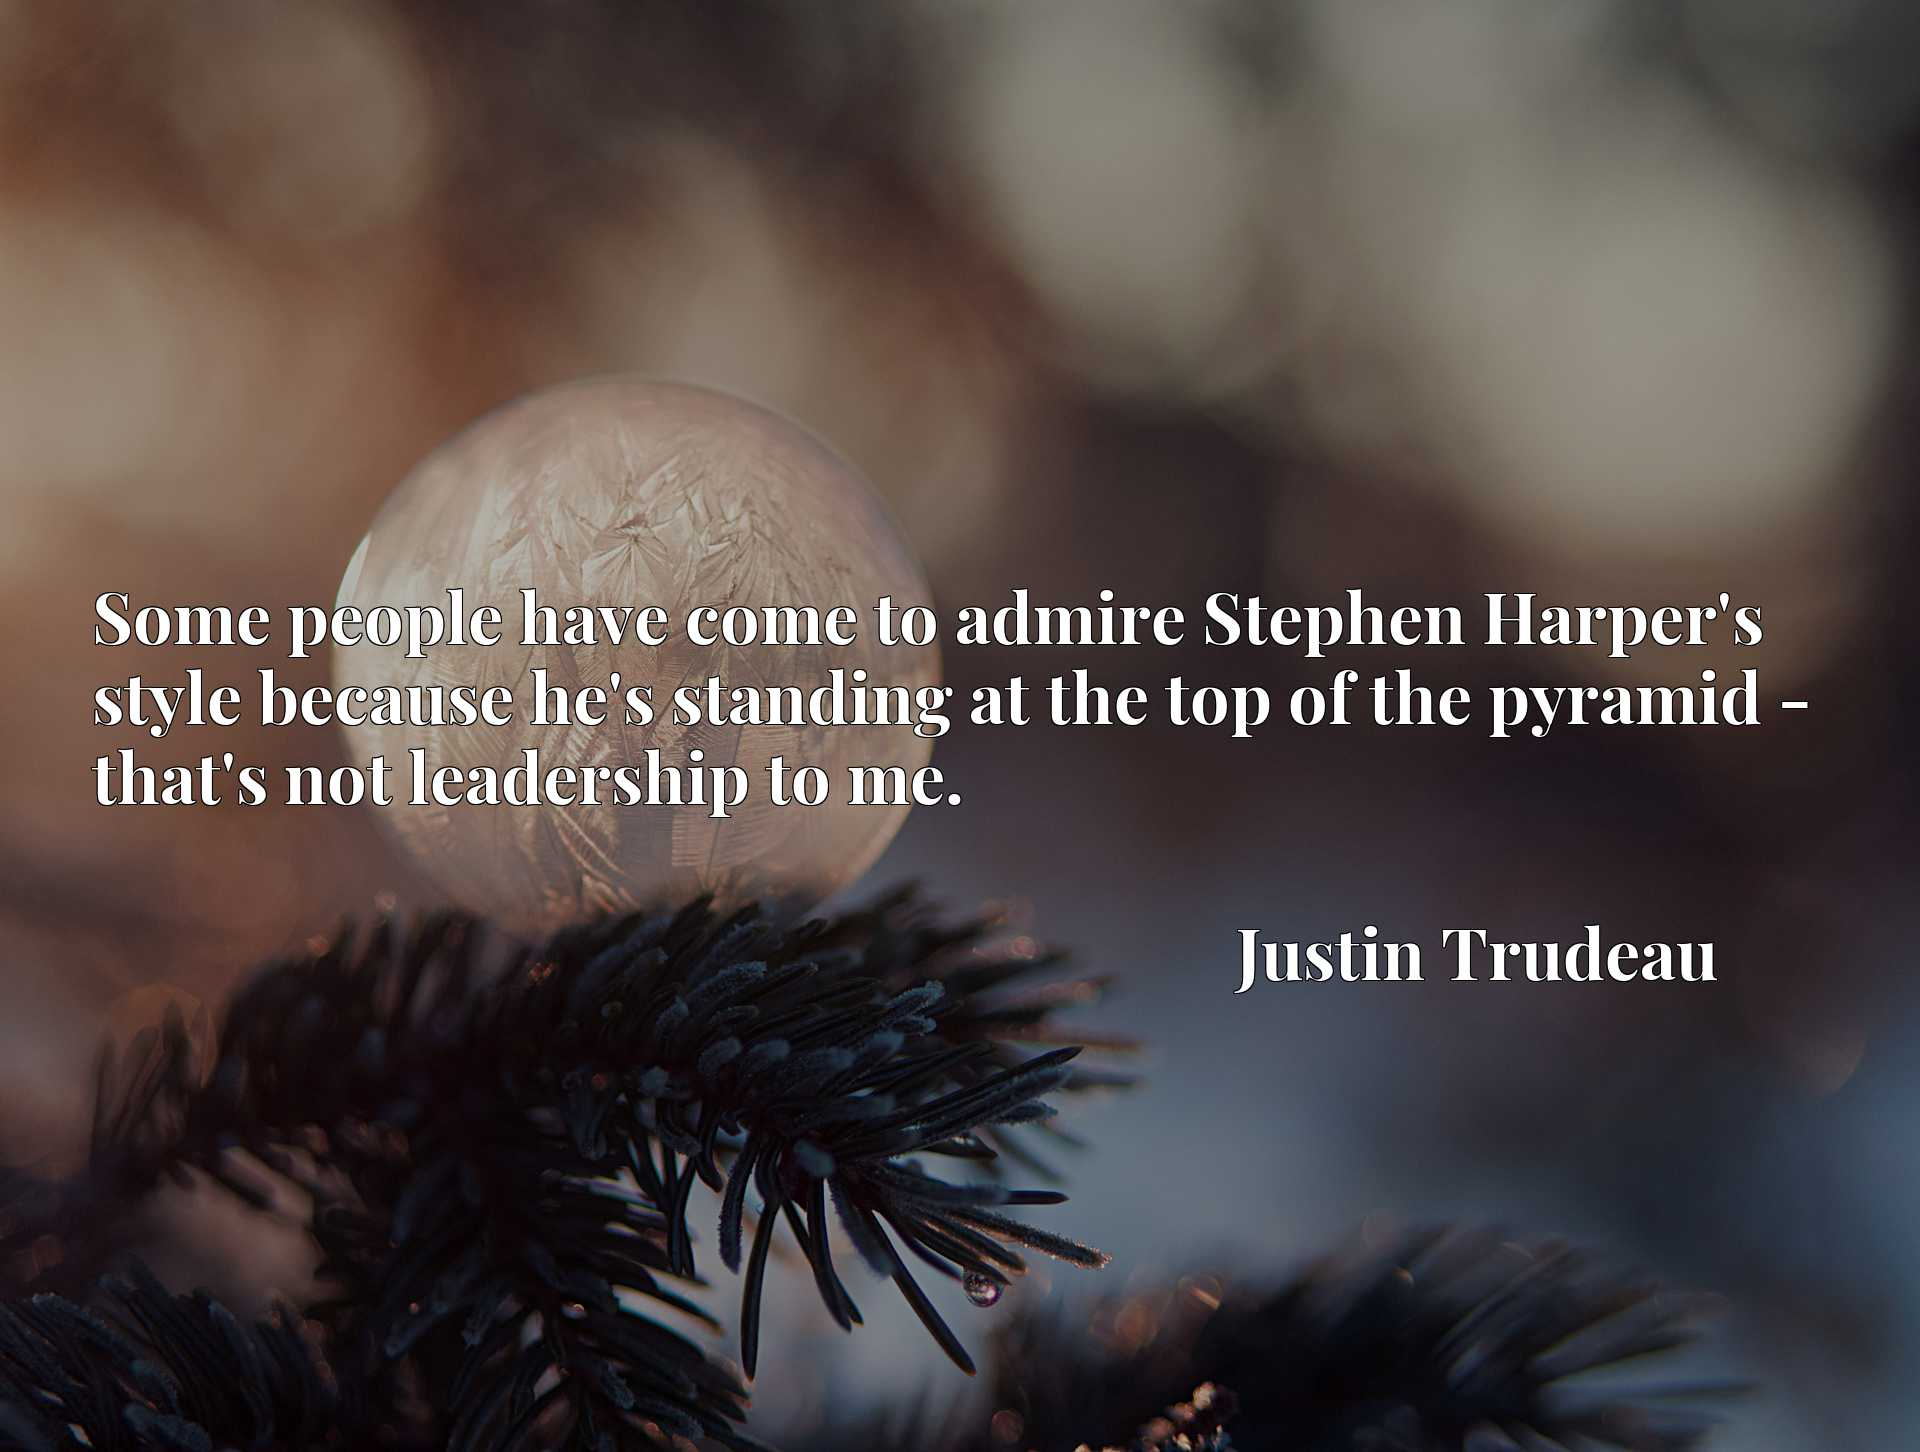 Quote Picture :Some people have come to admire Stephen Harper's style because he's standing at the top of the pyramid - that's not leadership to me.